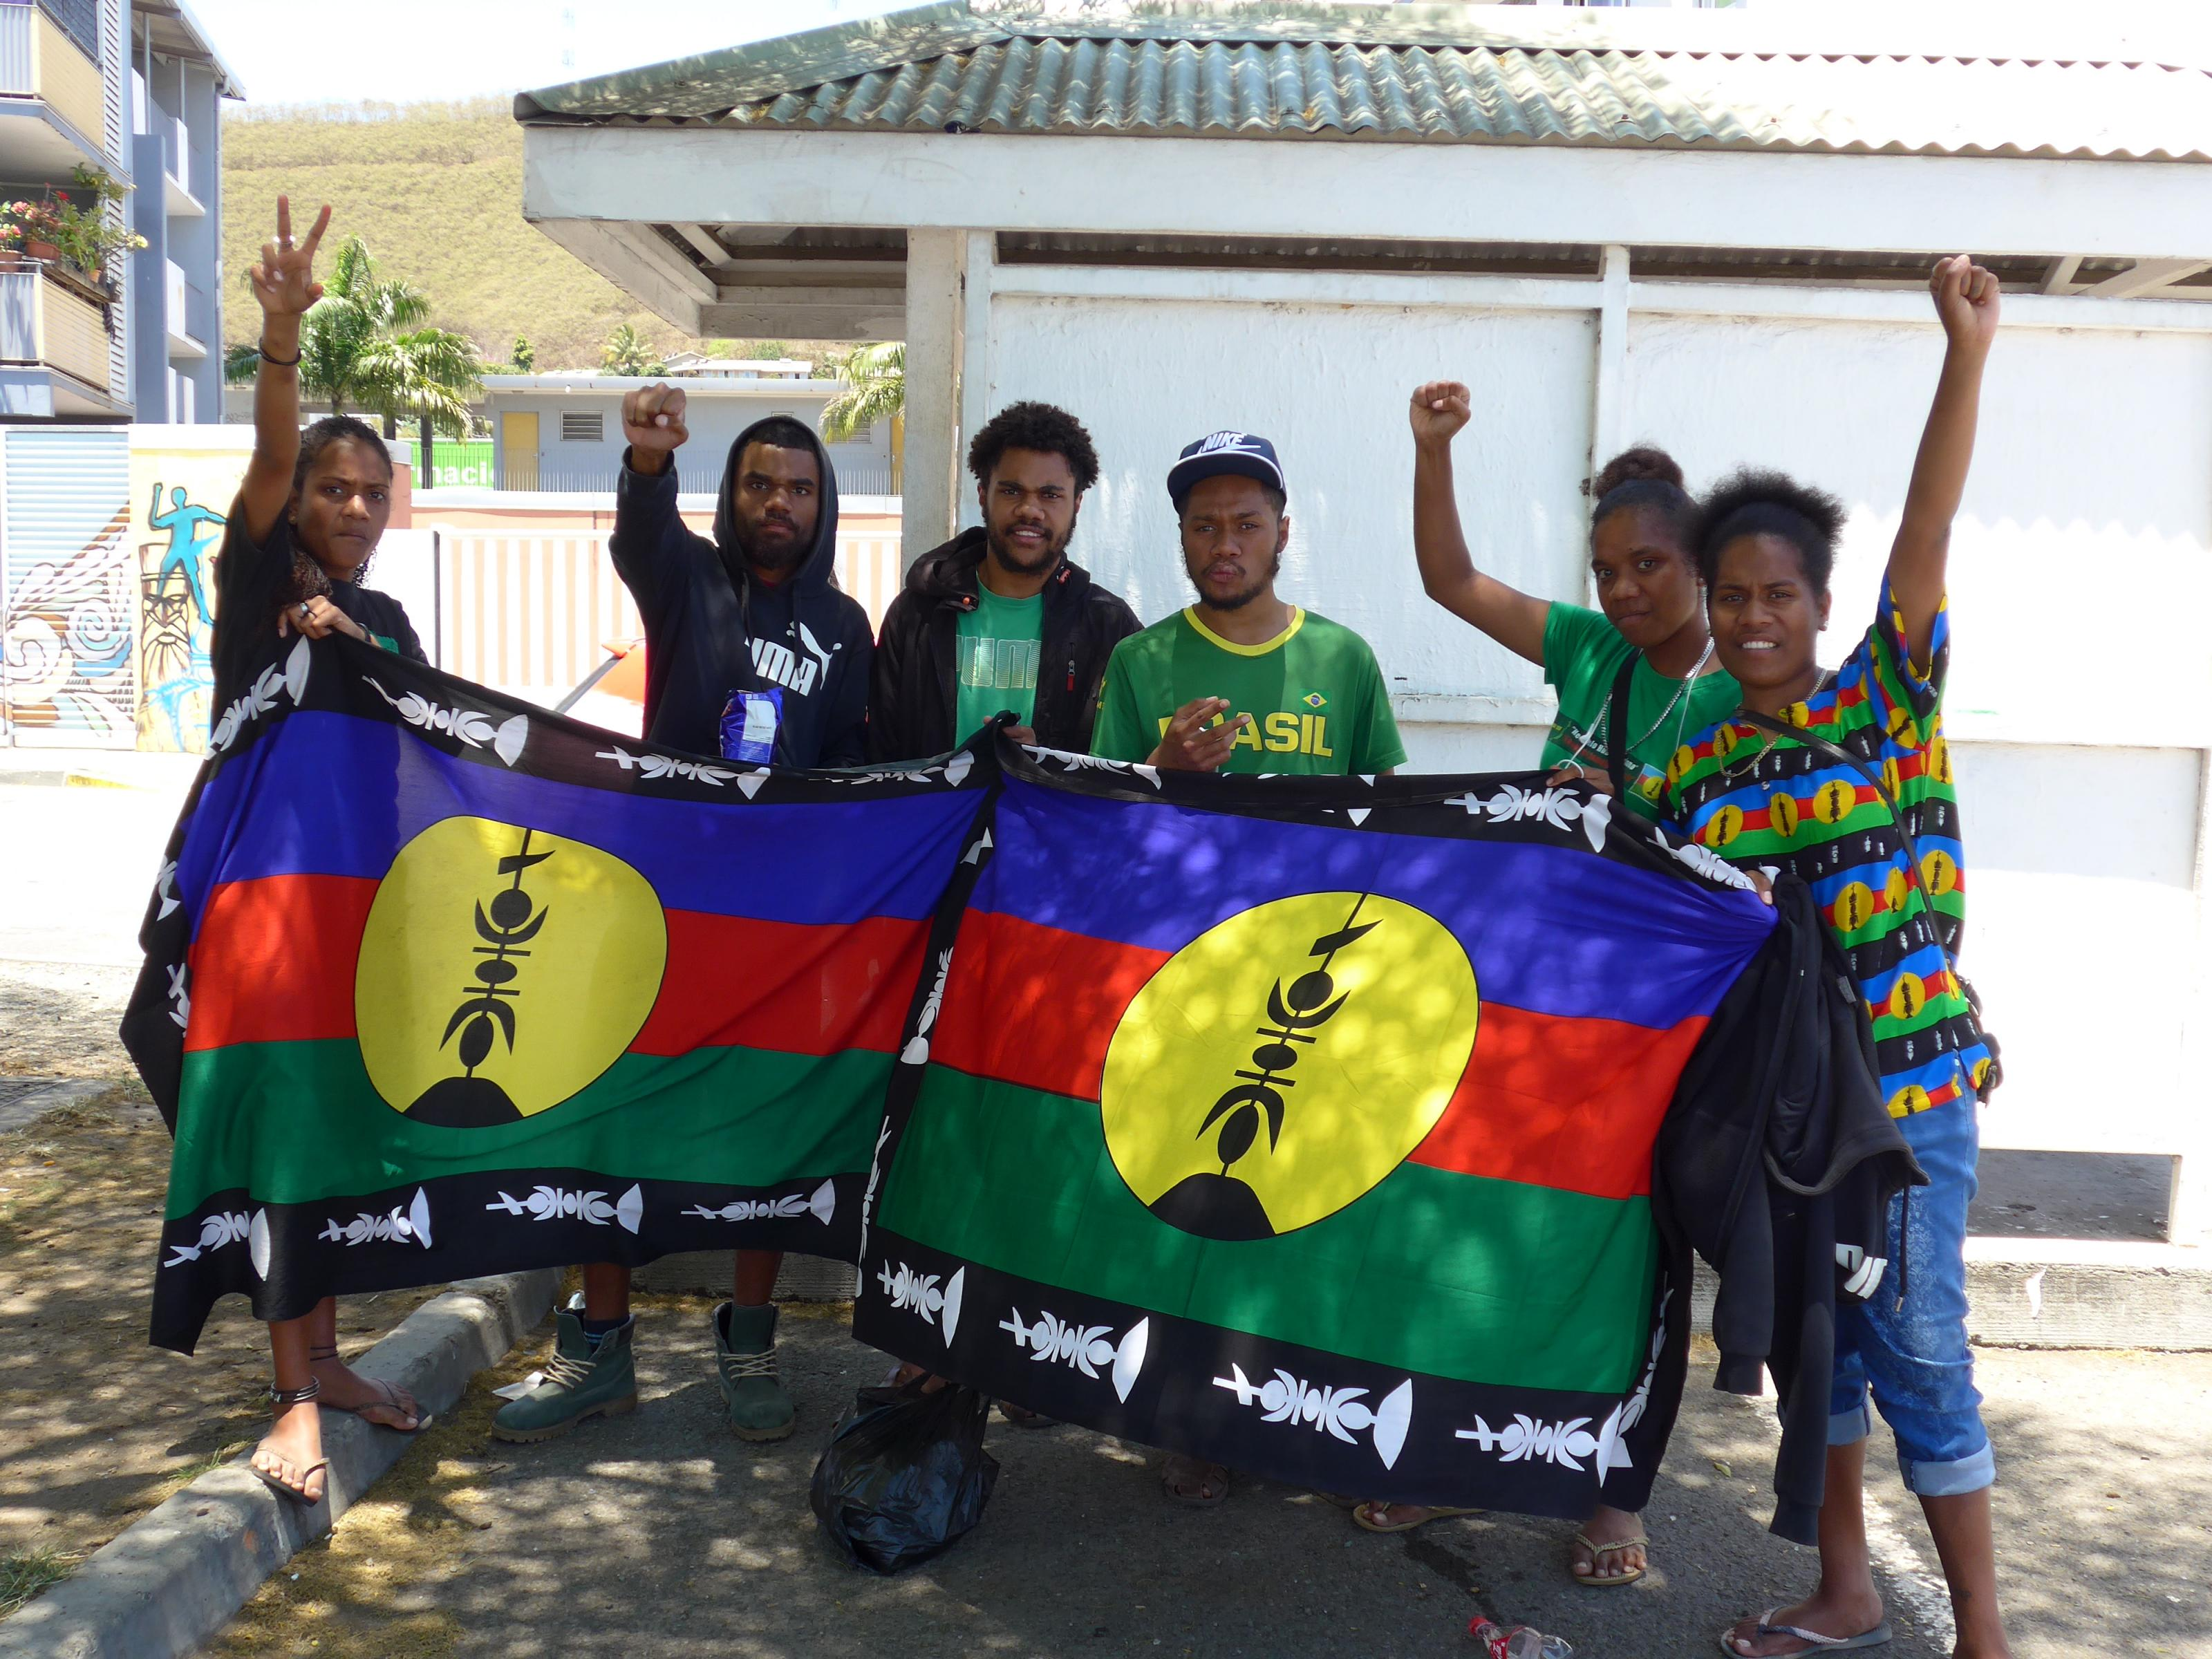 Photo: Massive youth vote for independence in Kanaky-New Caledonia (photo Nic Maclellan)